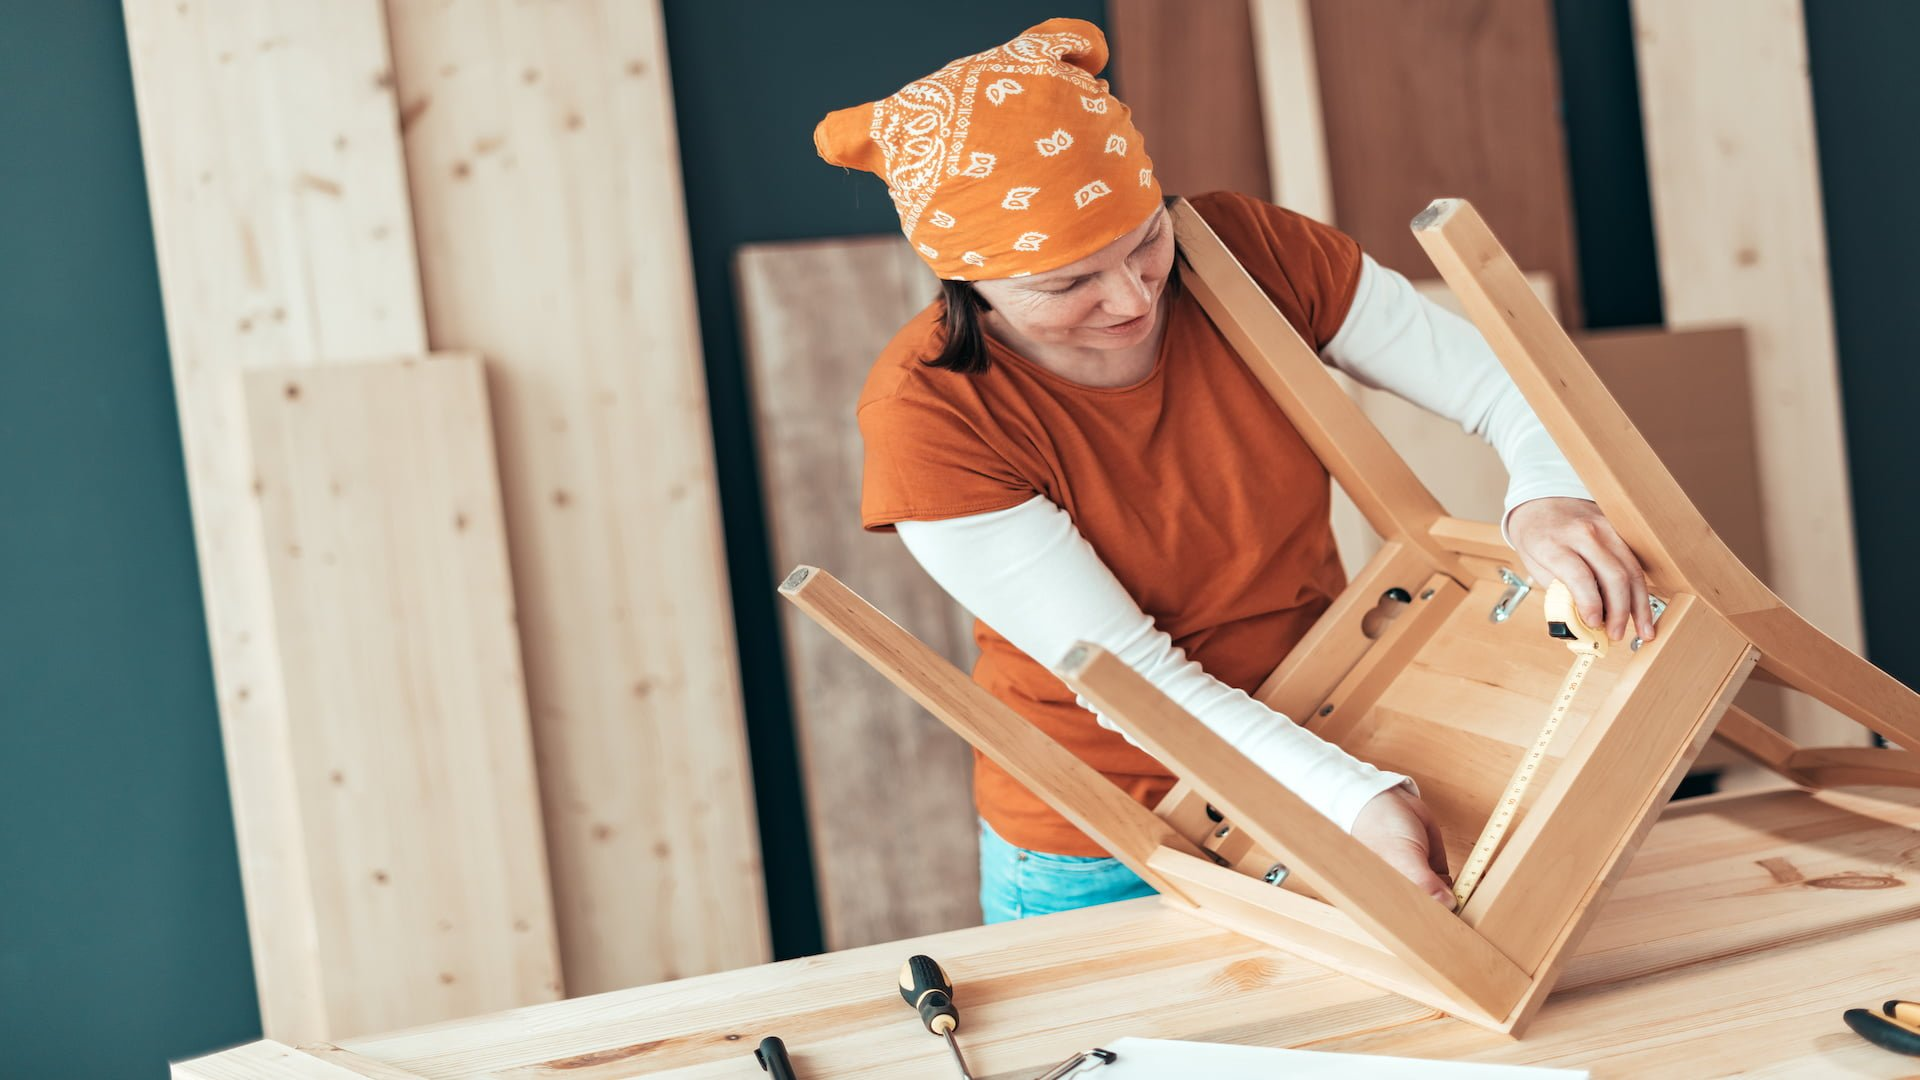 Female carpenter repairing wooden chair legs in small business woodwork workshop